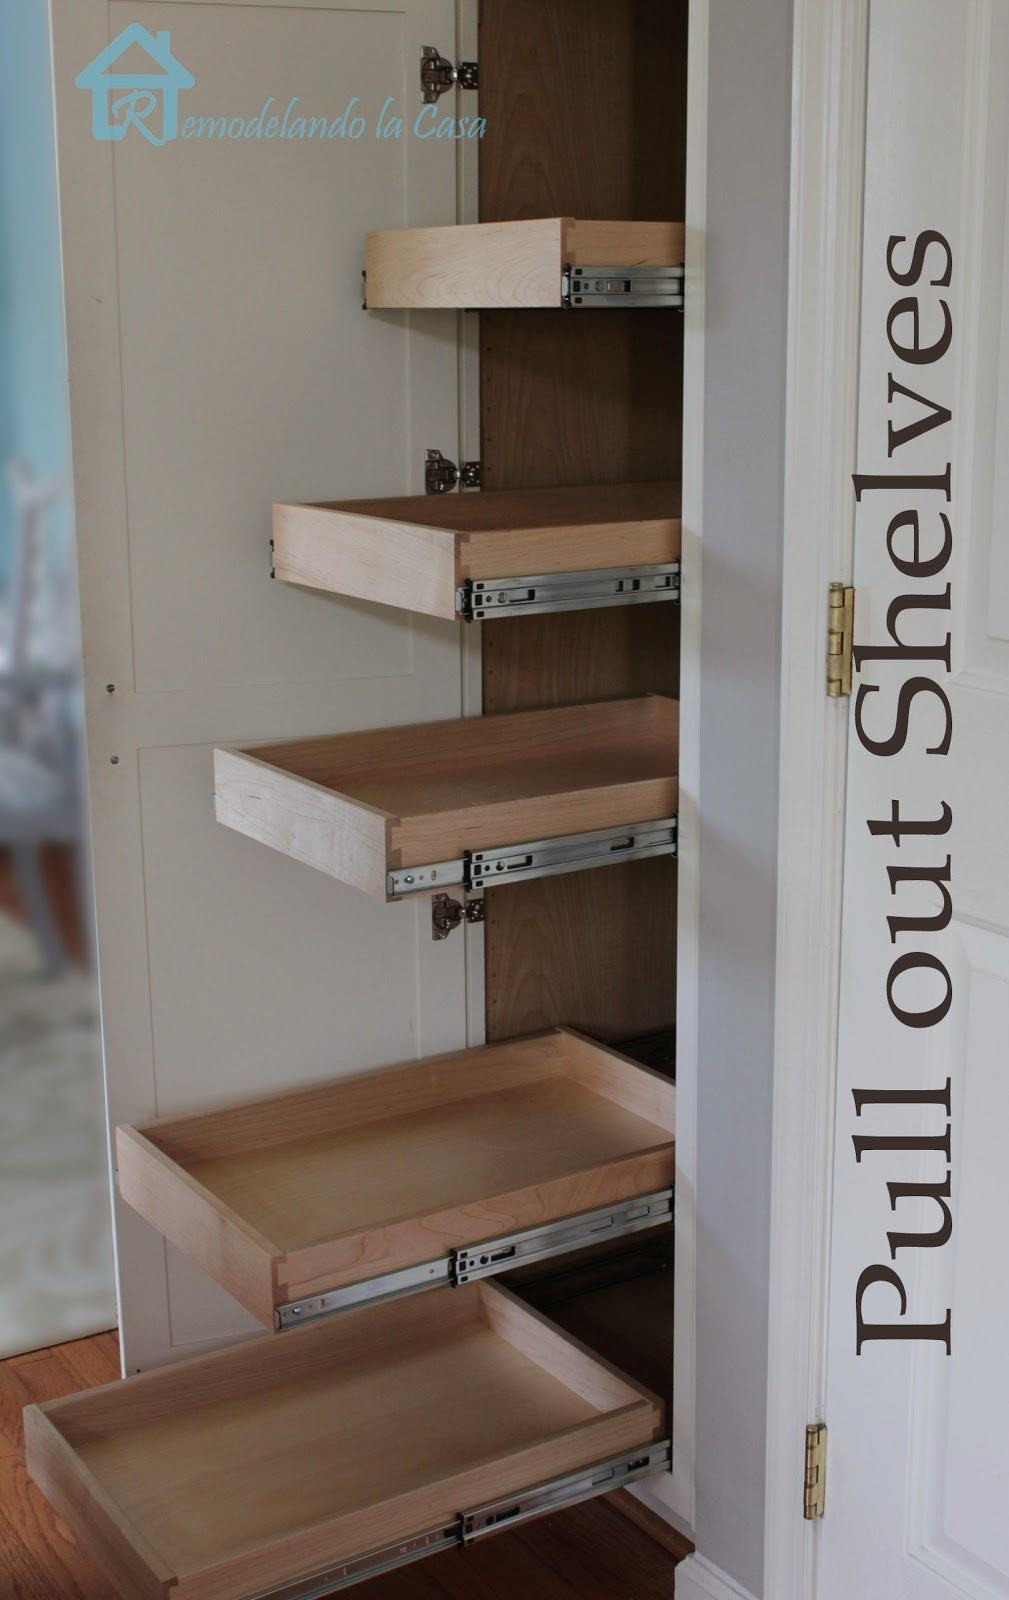 Best ideas about Pantry Shelves DIY . Save or Pin Cheap Home Improvement Ideas DIY Projects Craft Ideas Now.